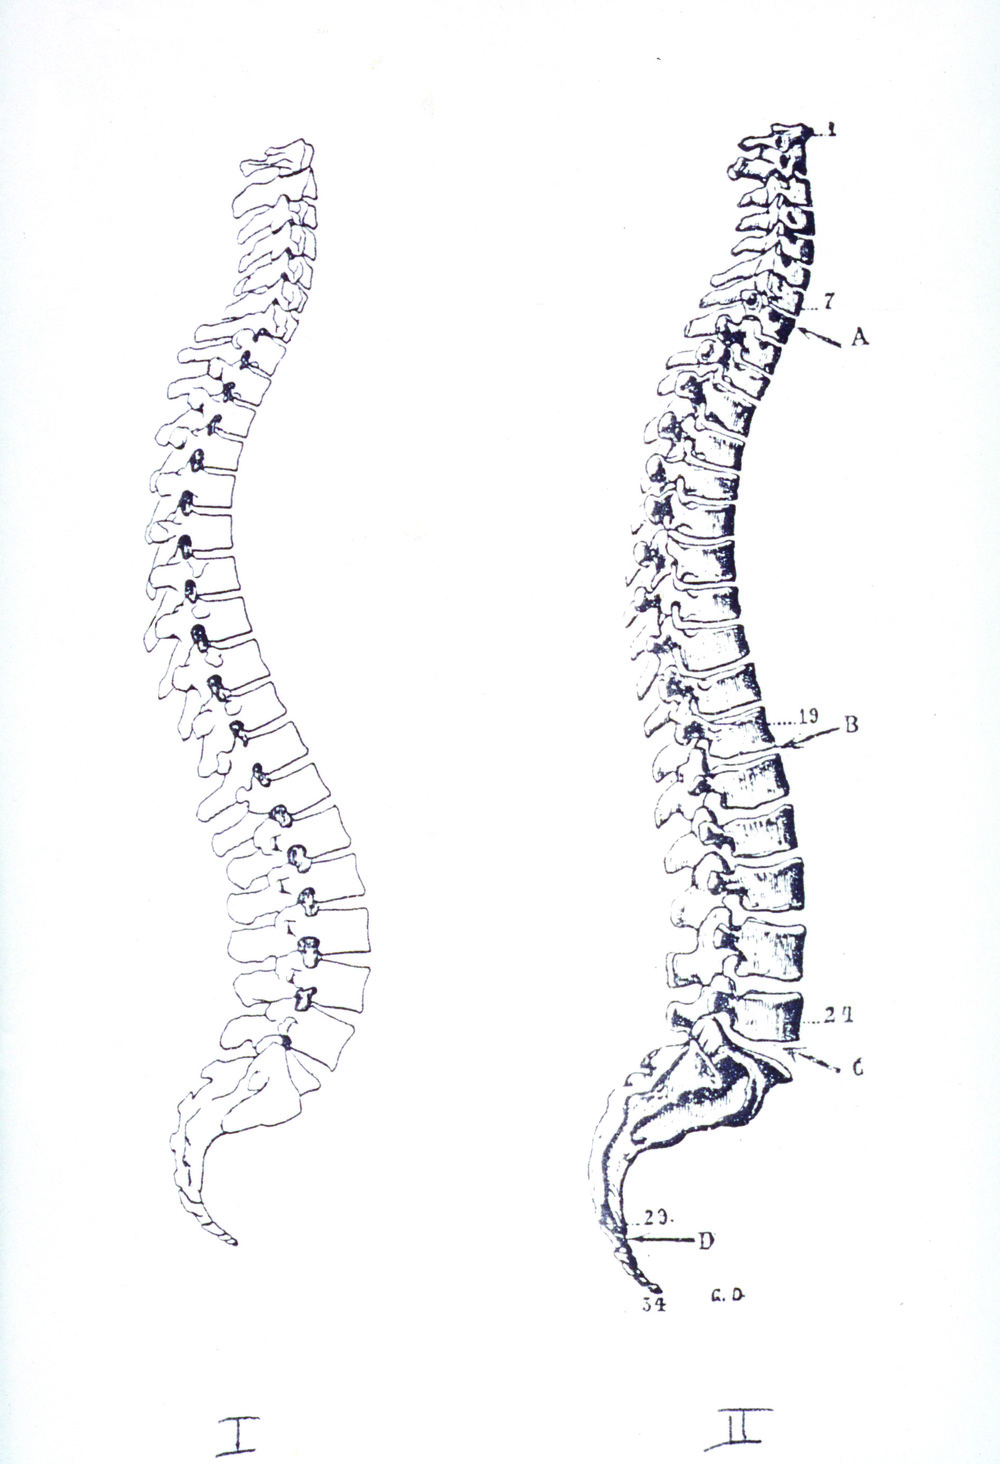 From GokhaleMethod.com: Illustrations of the human spine from anatomy books published in I) 1990 and II) 1911